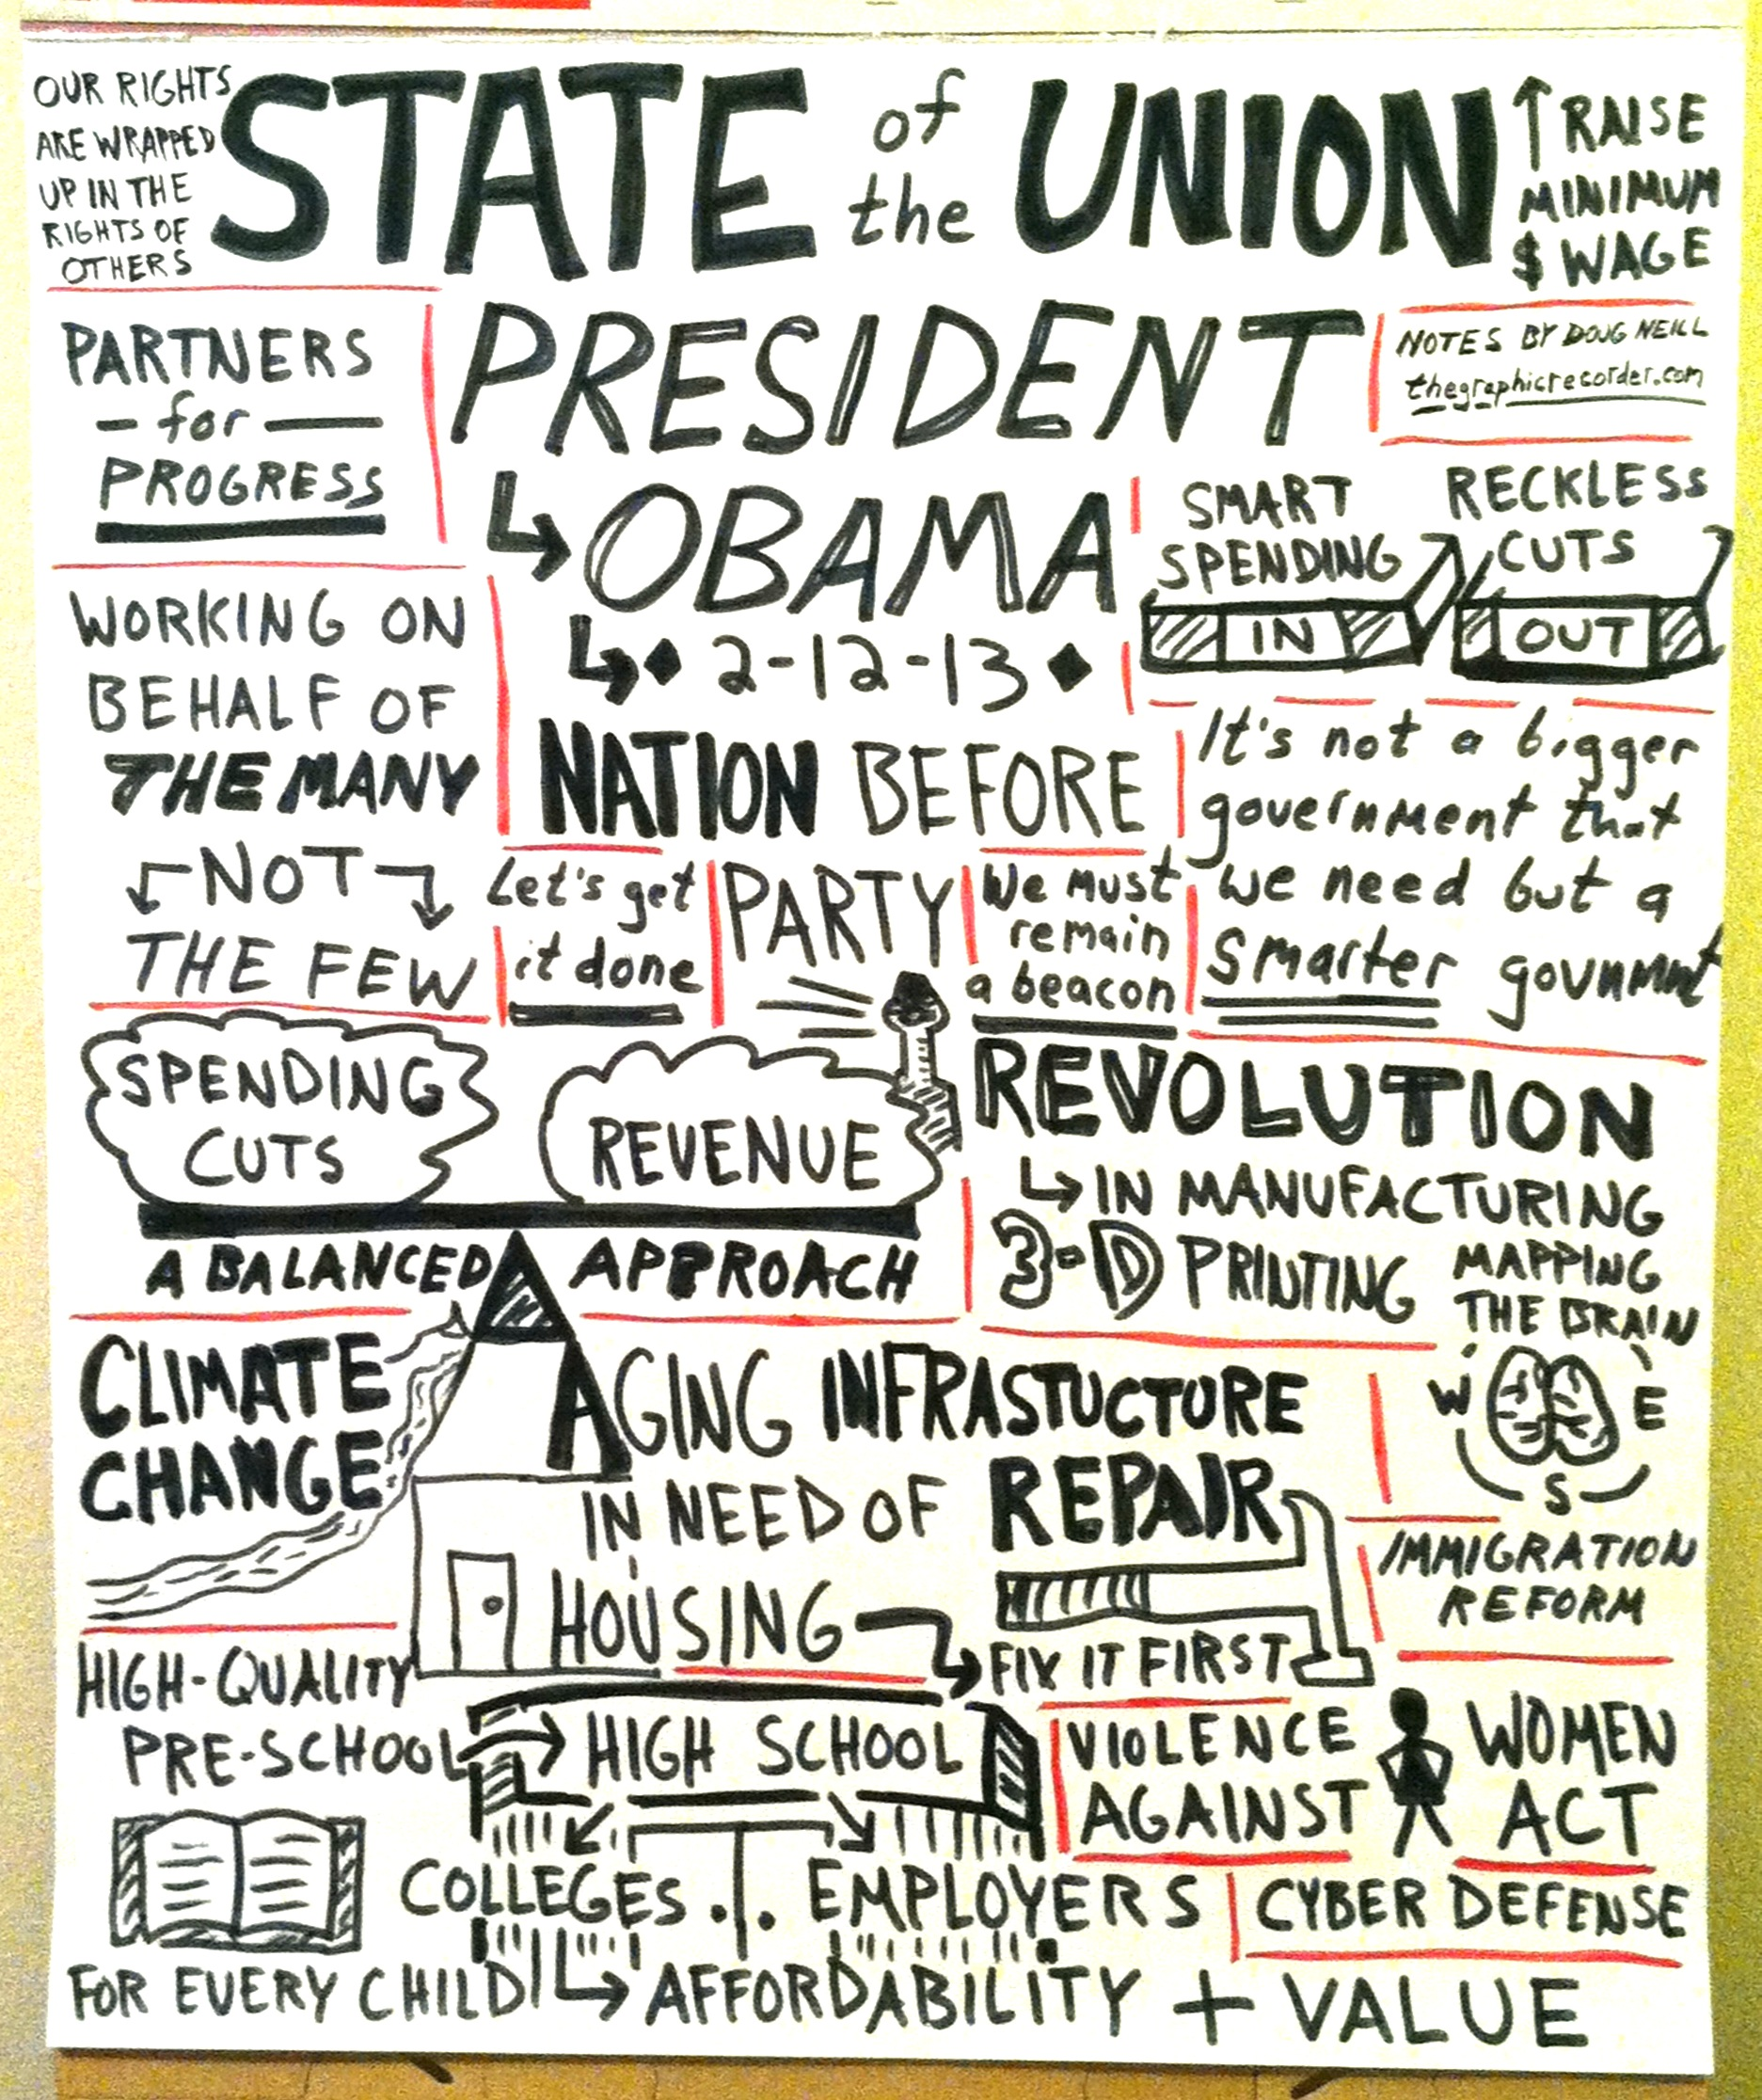 Graphic Recording of 2013 State of the Union - Doug Neill - sketchnotes, visual thinking, mapping the brain, partners for progress, working on behalf of the many not the few, balanced approach